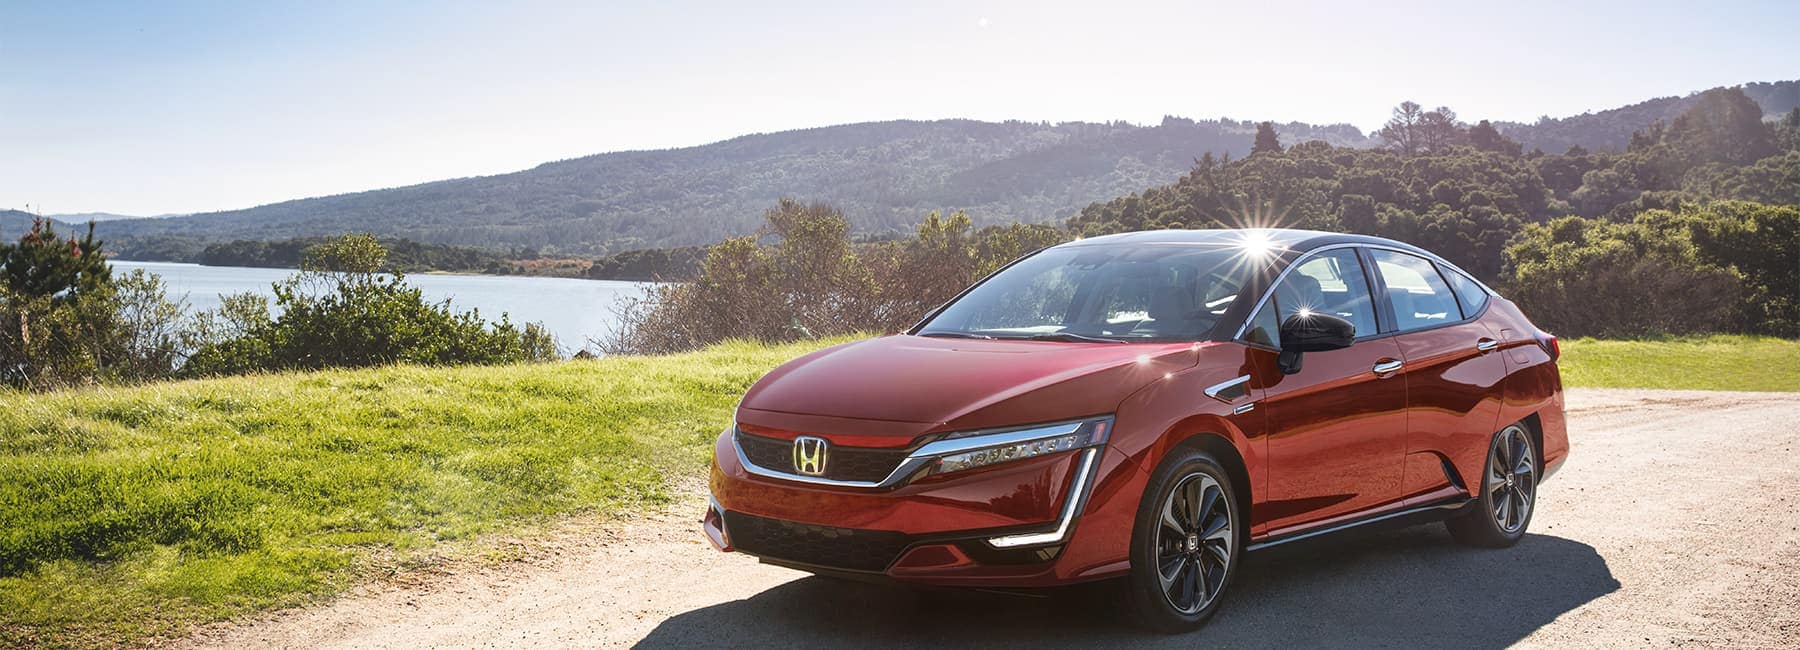 2020 Honda Clarity front View